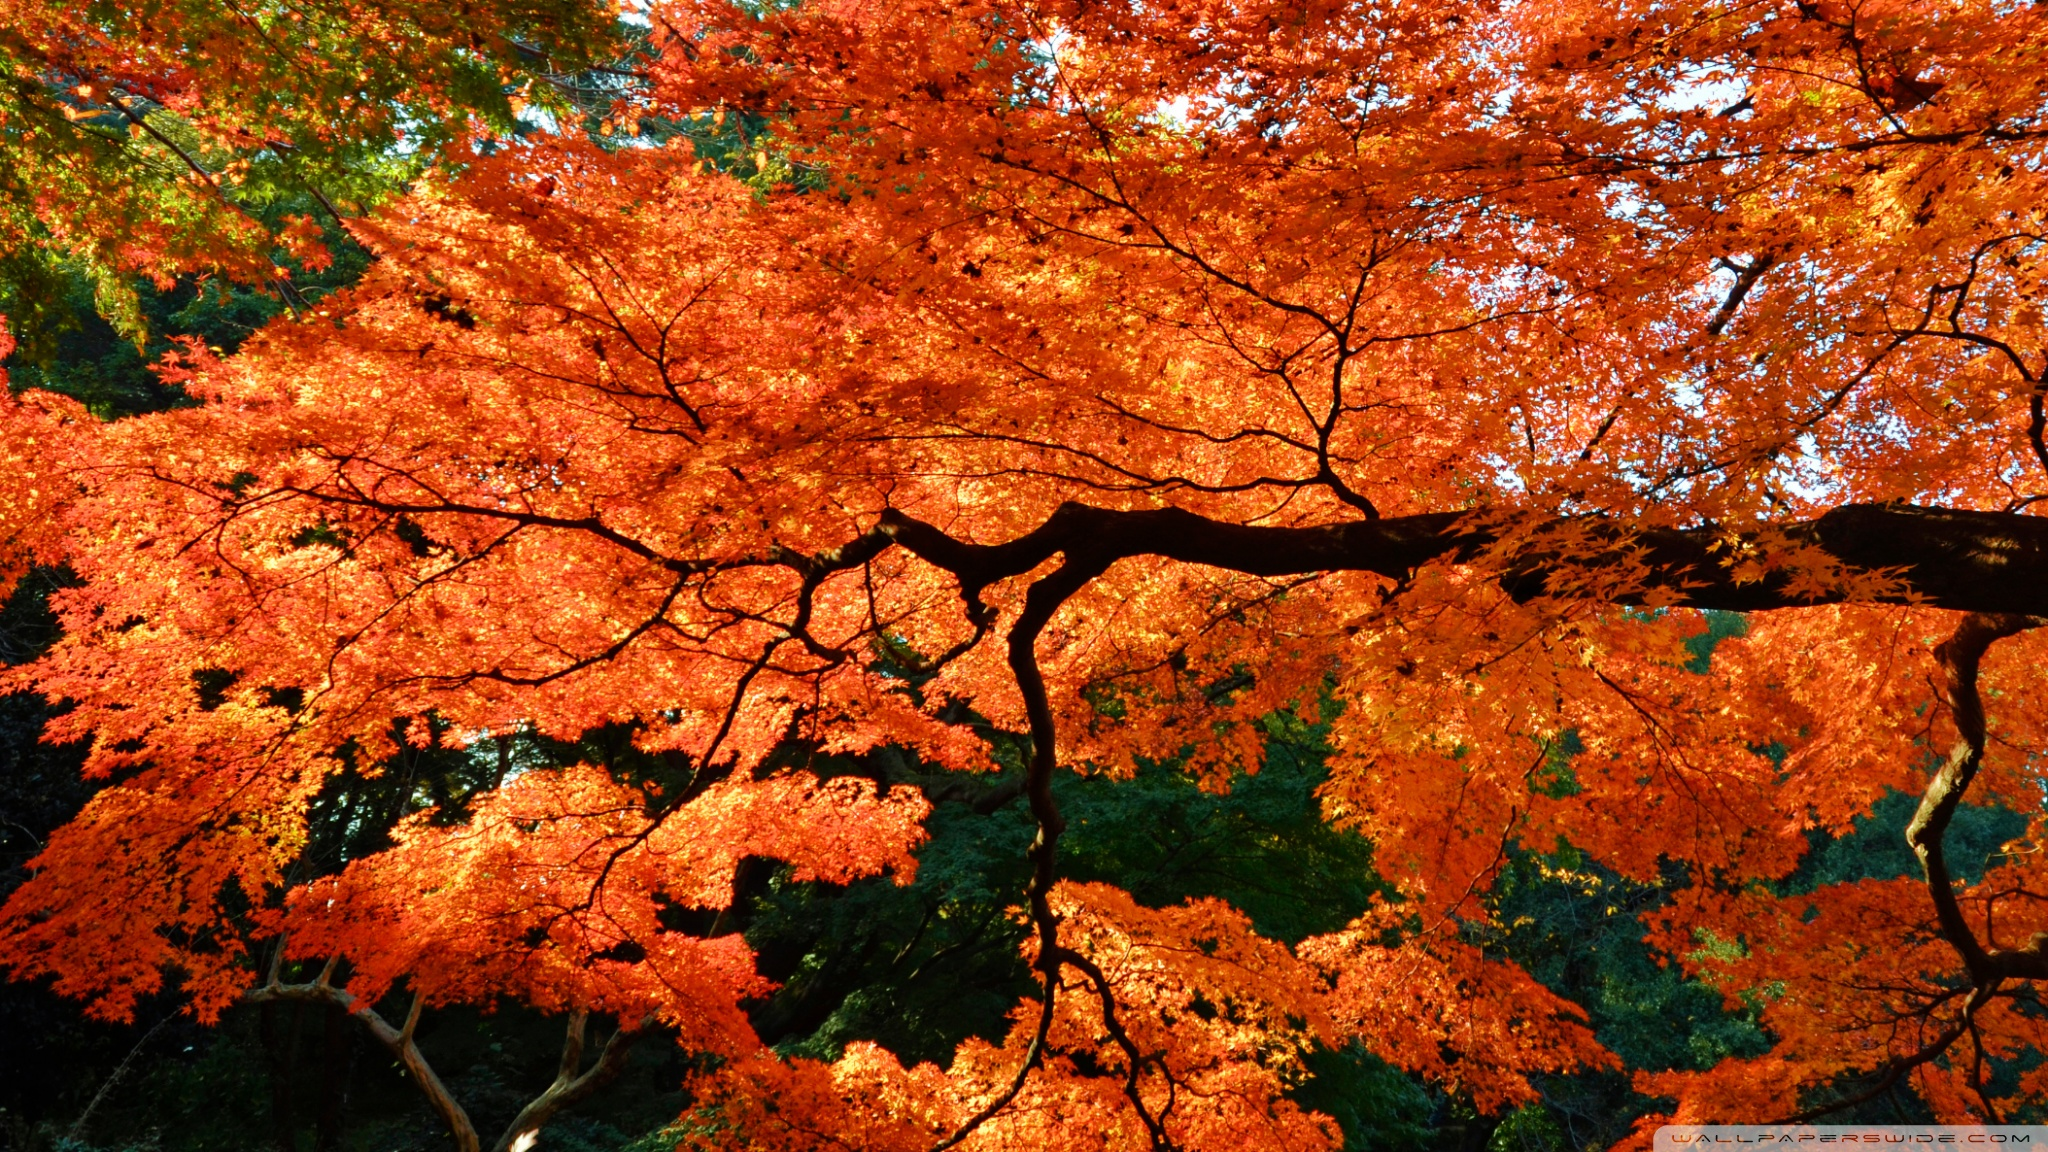 Pc Fall Wallpapers Beautiful Japanese Maple Tree 4k Hd Desktop Wallpaper For